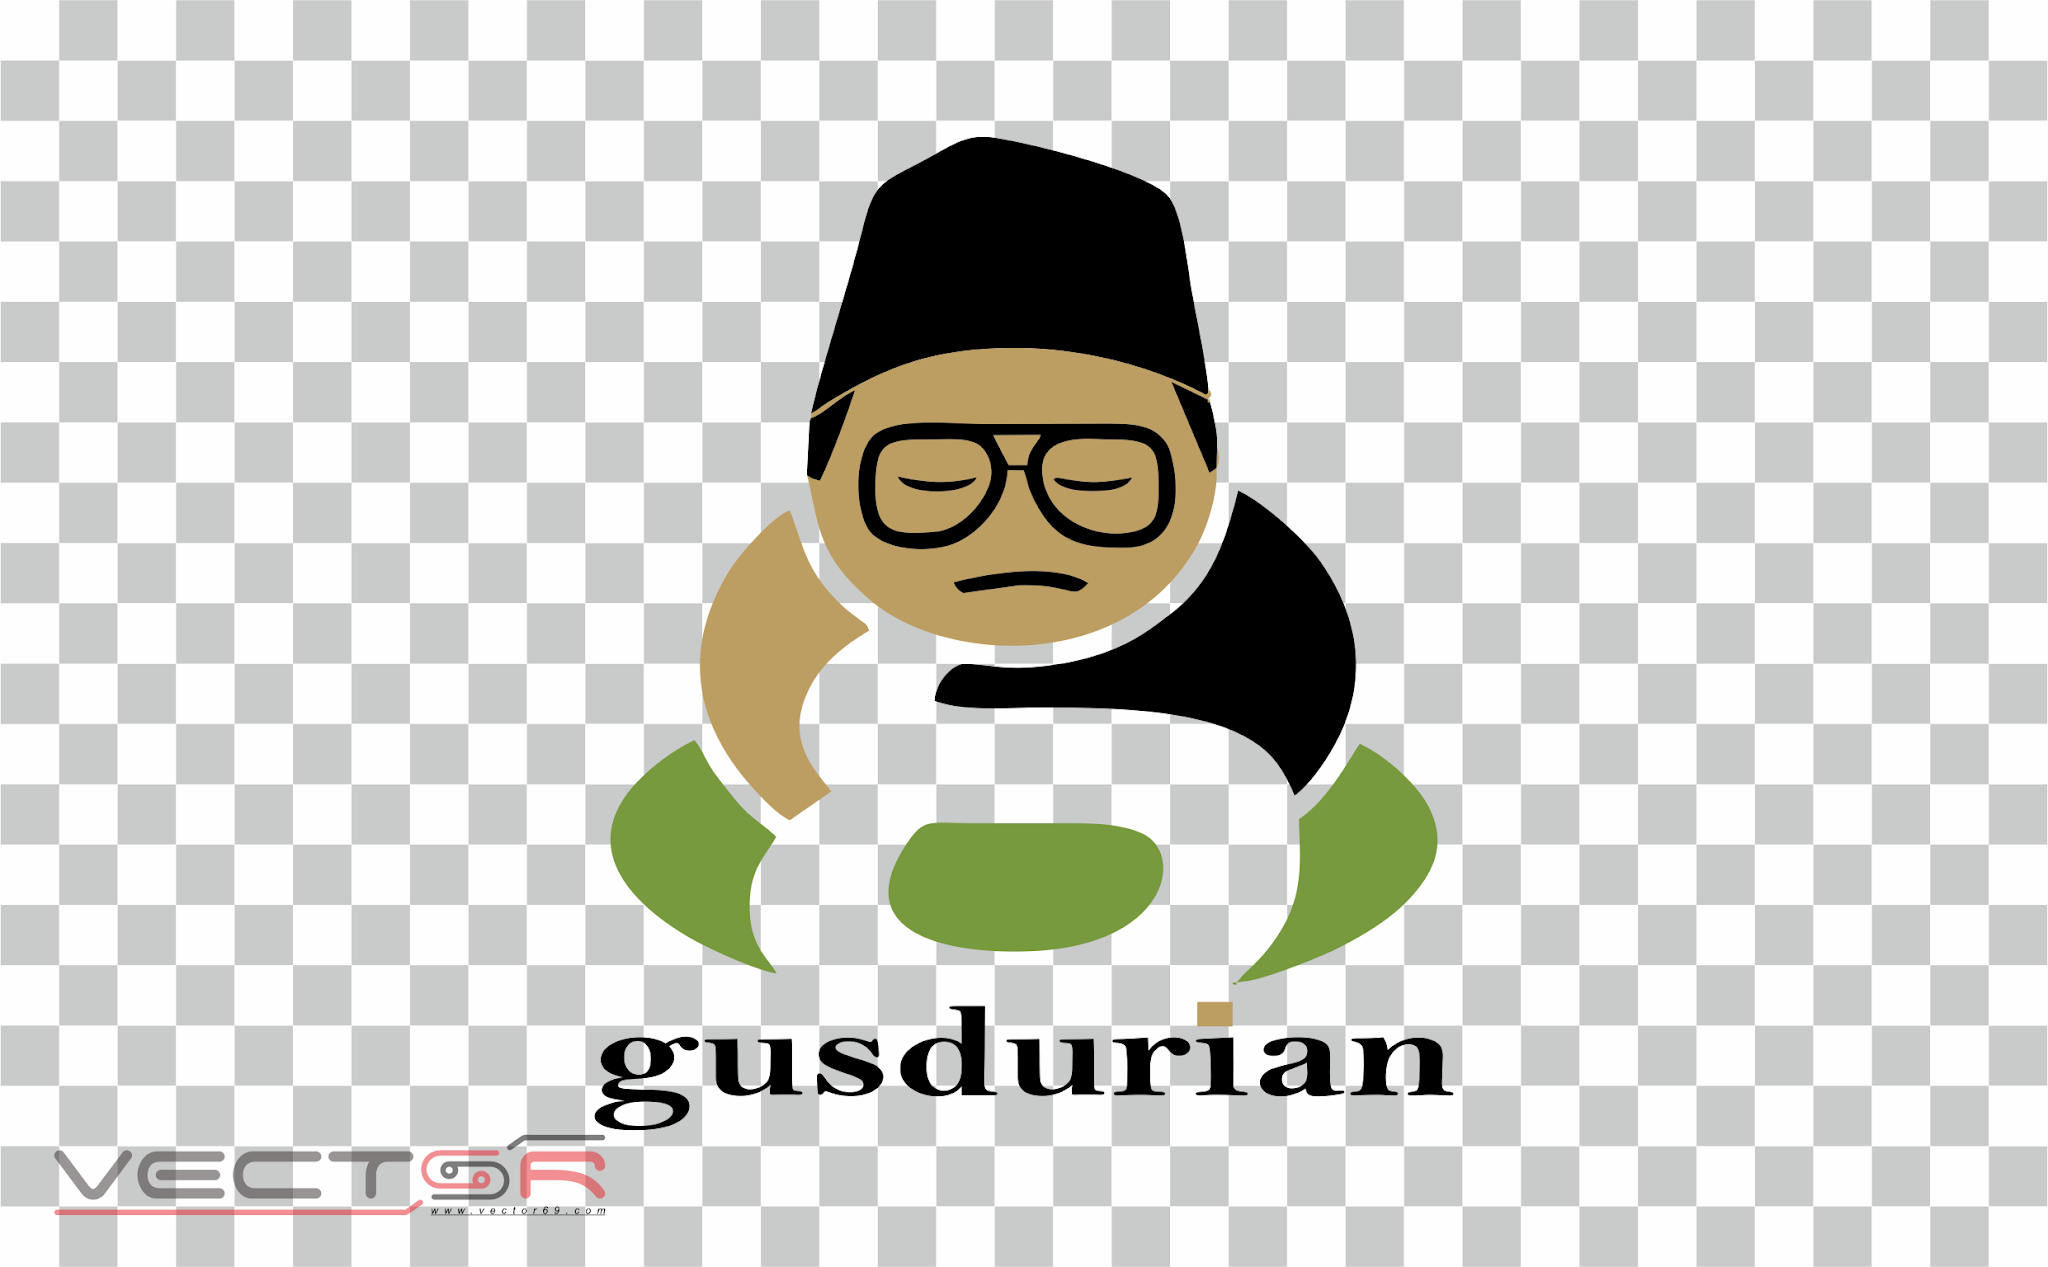 Gusdurian Logo - Download Vector File PNG (Portable Network Graphics)